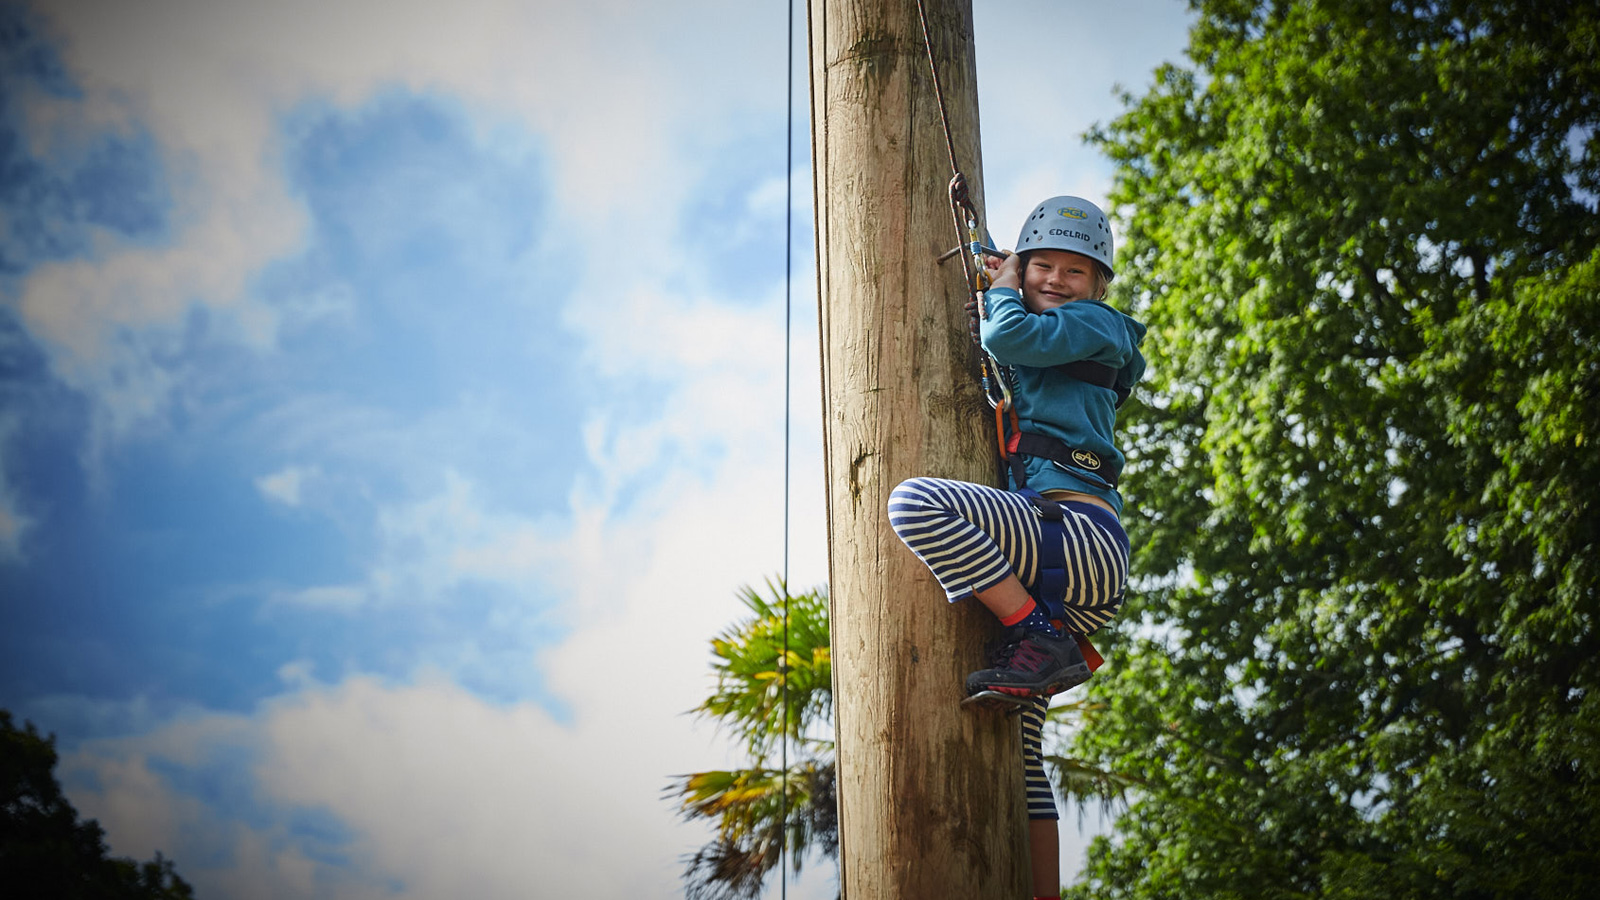 Family Activity Adventure Holidays In Dorset At Pgl